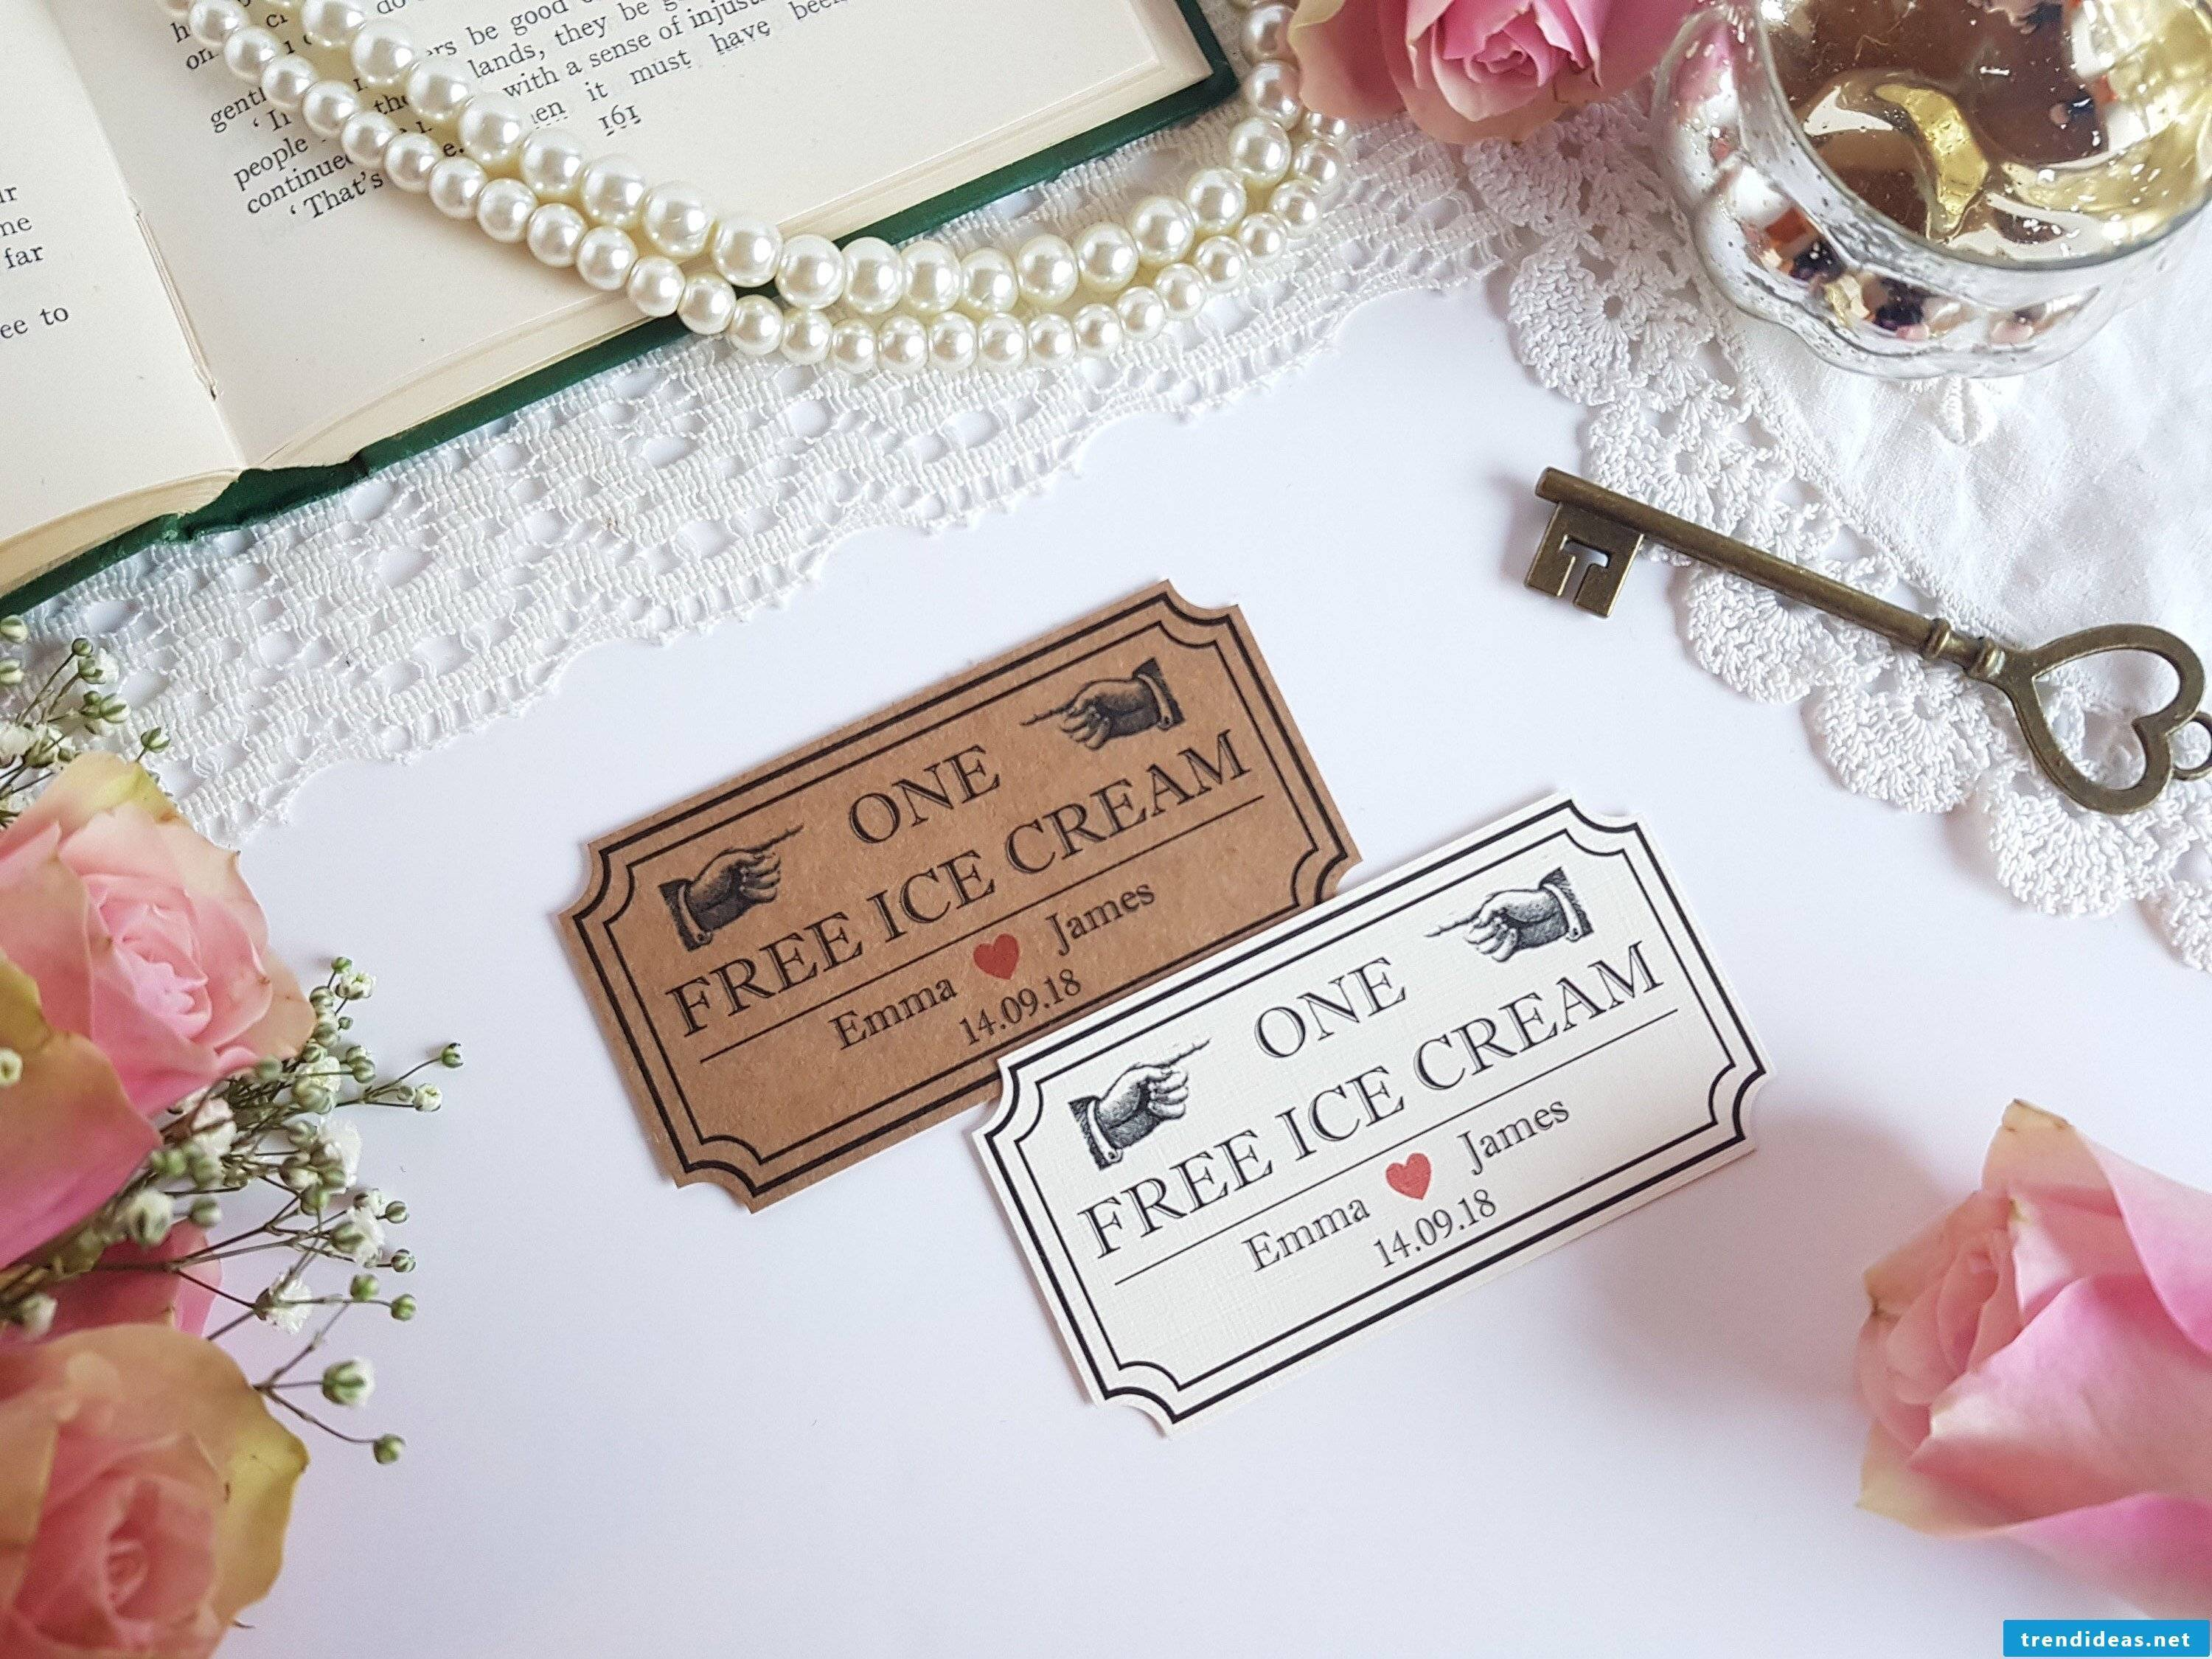 Funny ideas for wedding gift - tinker ice cream coupon